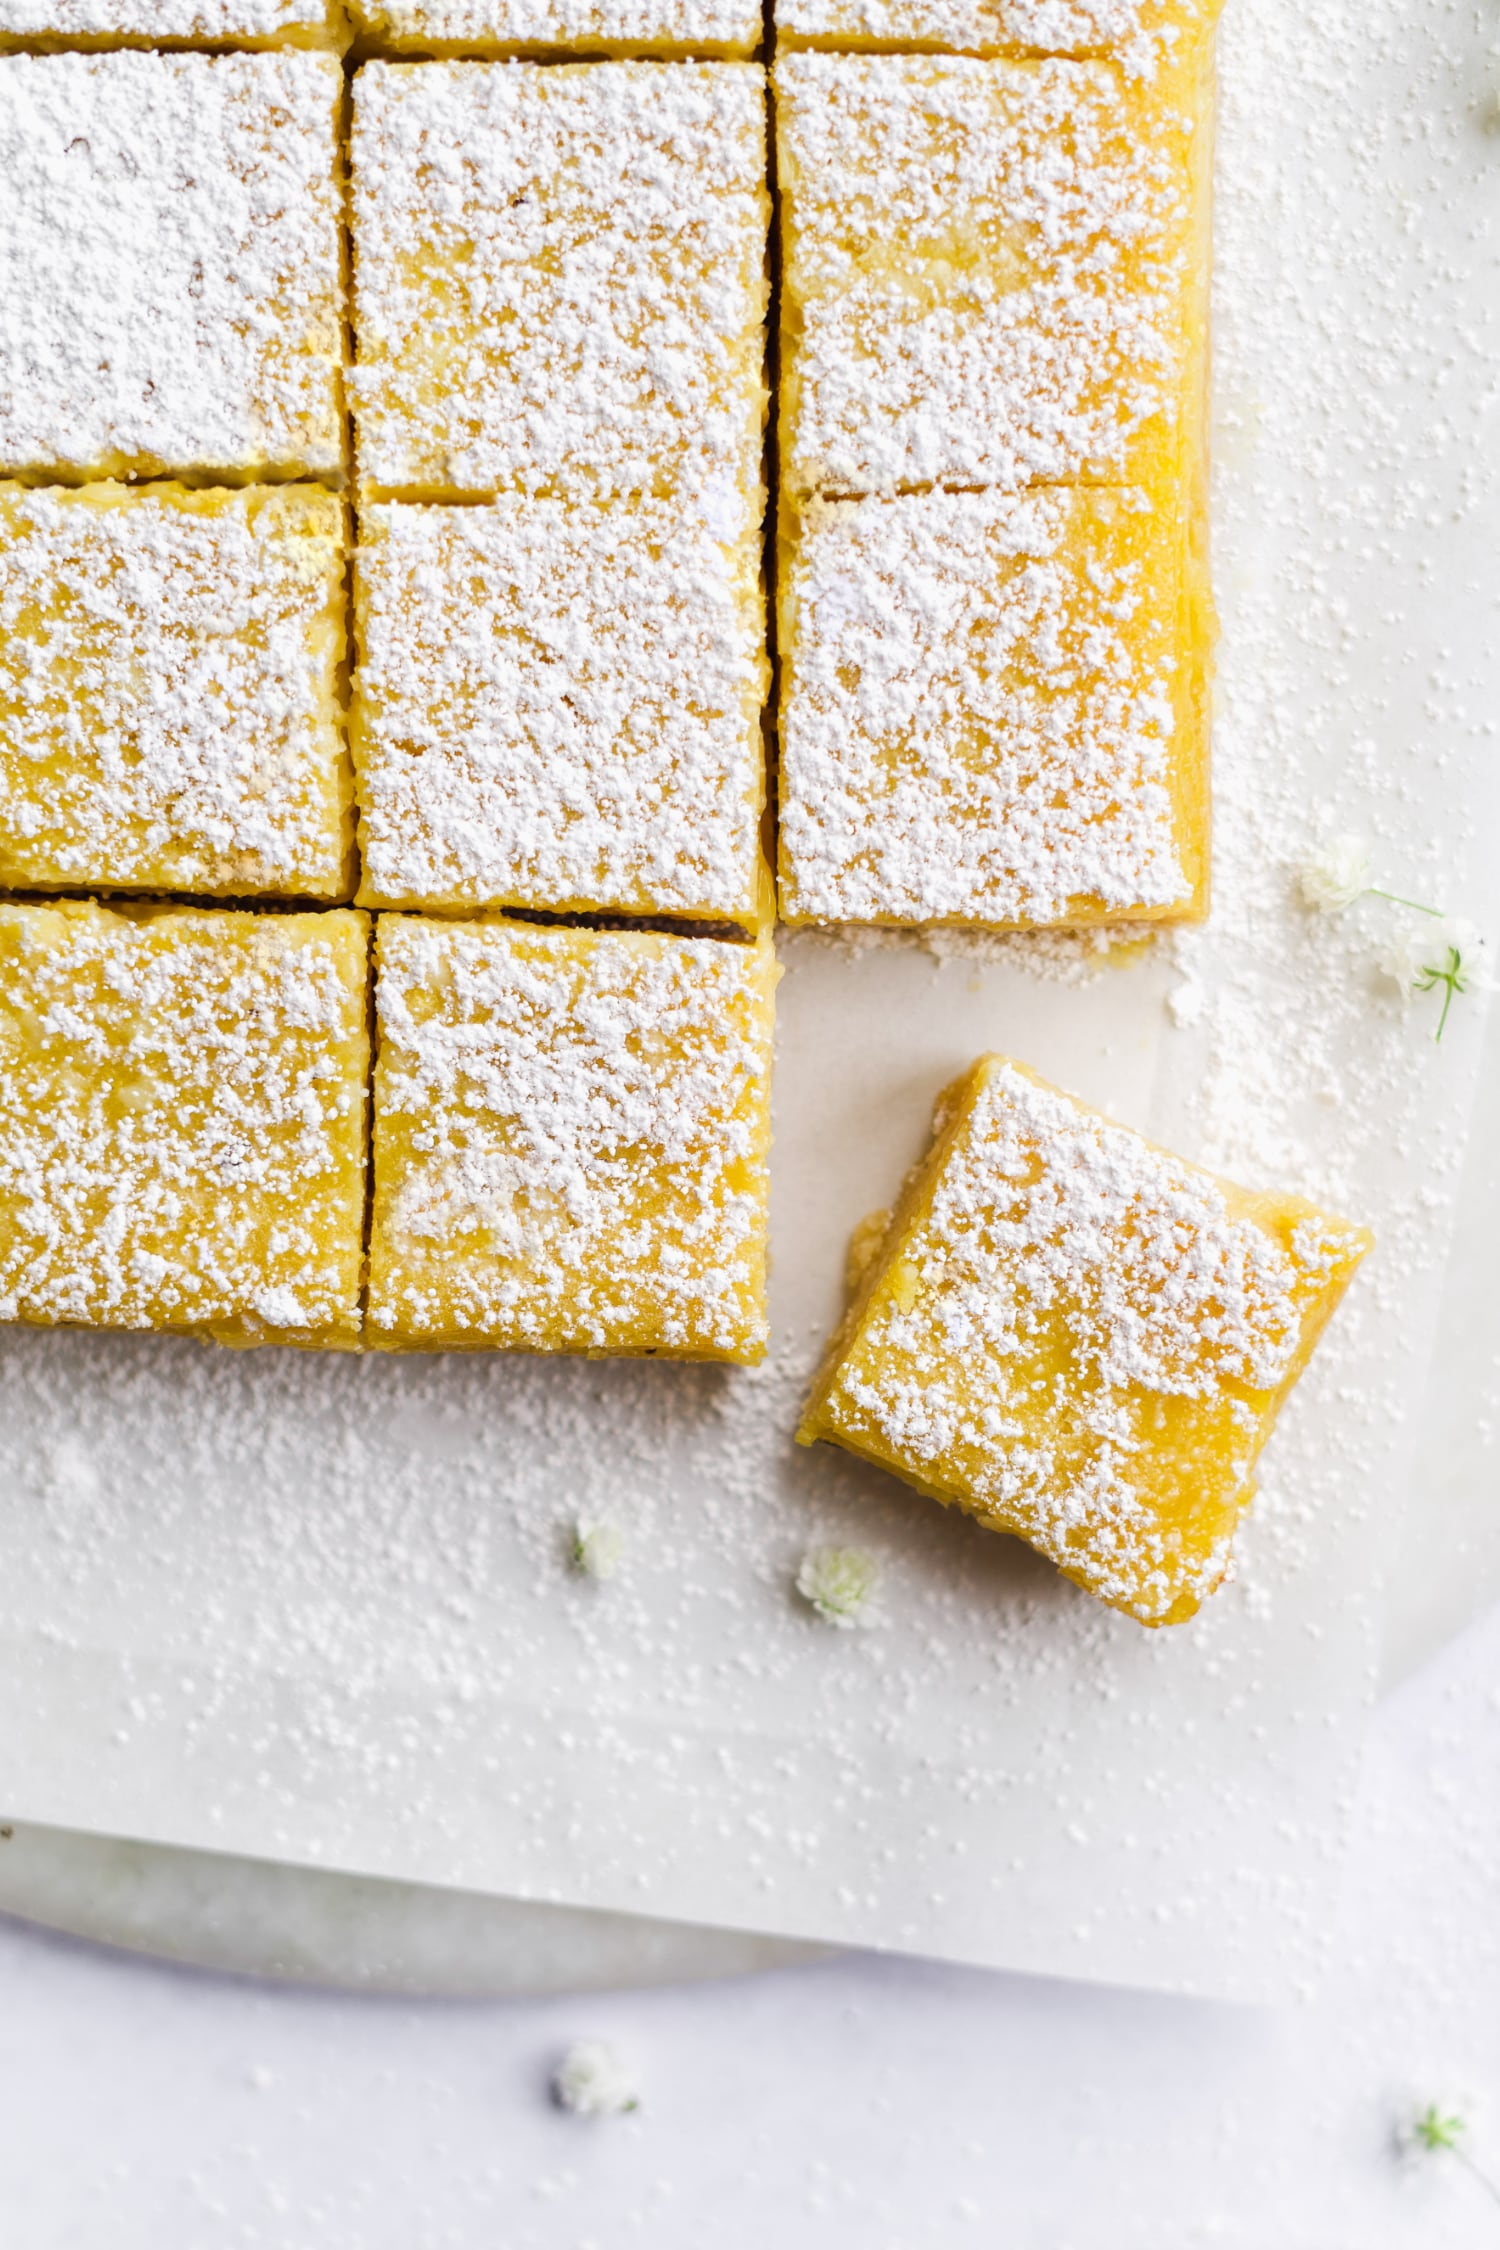 close up of lemon bar with powdered sugar on top